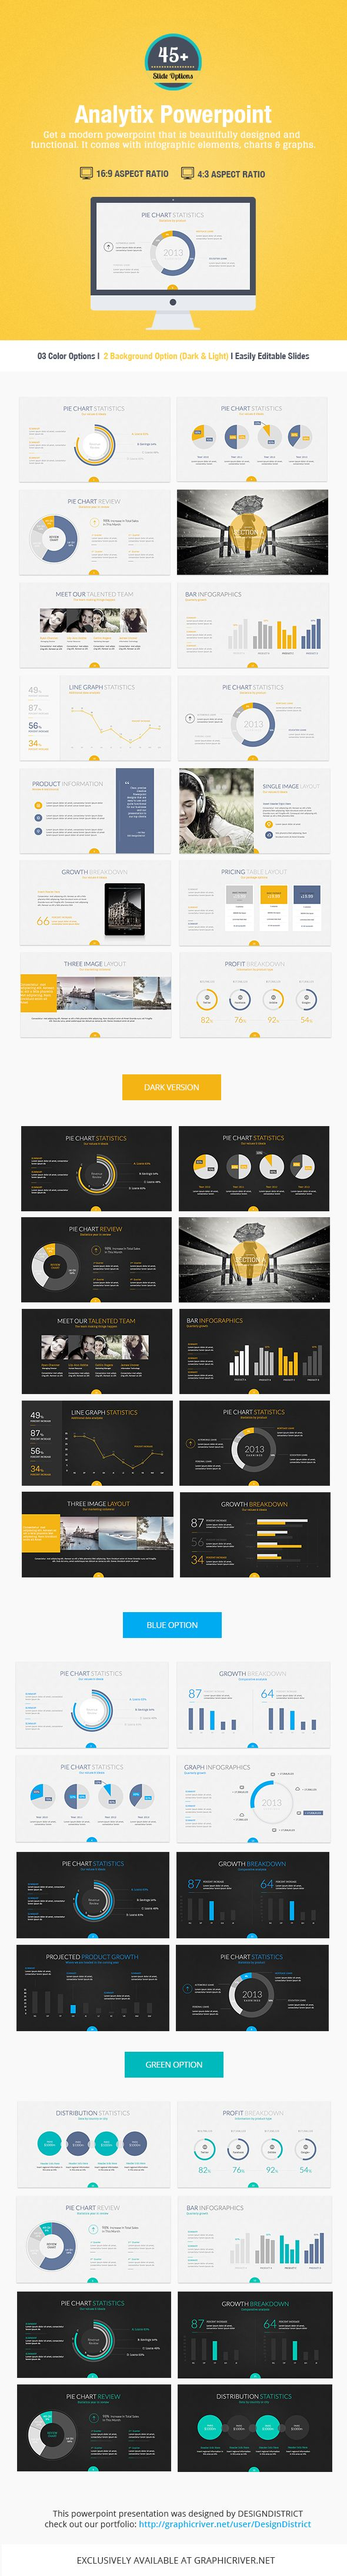 Analytix Powerpoint on Behance